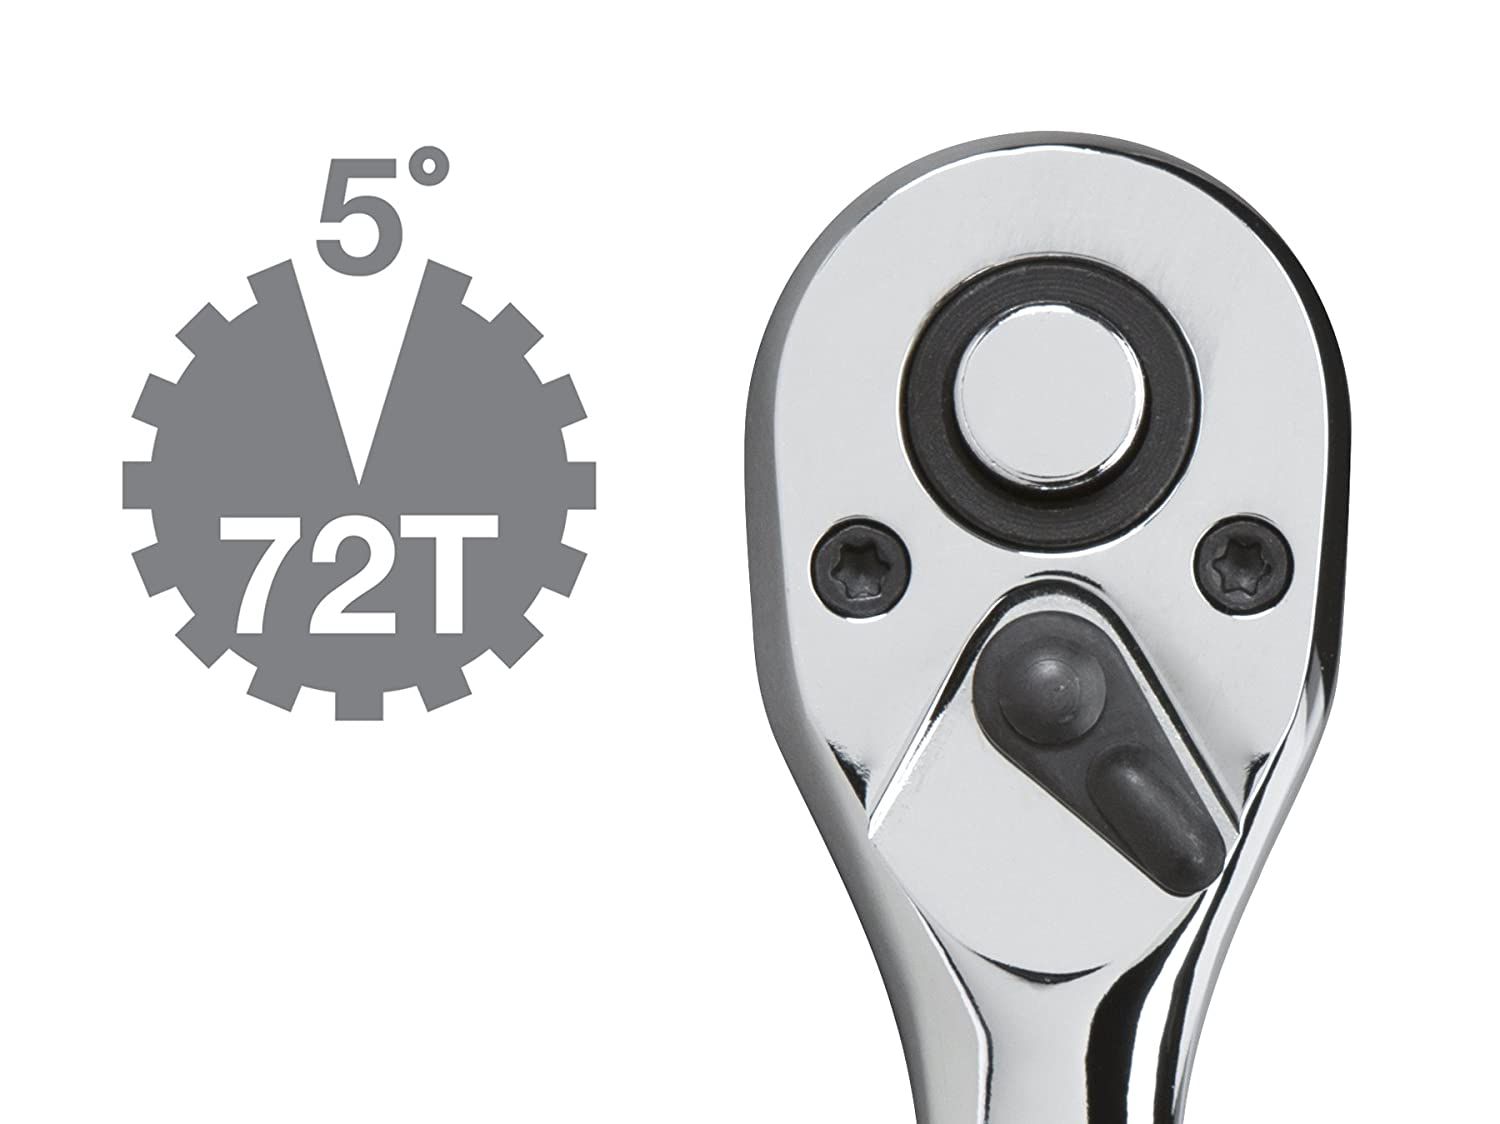 TEKTON 1//2-Inch Drive by 10-Inch Quick-Release Offset Ratchet 1488 Michigan Industrial Tools 72-Tooth Oval Head